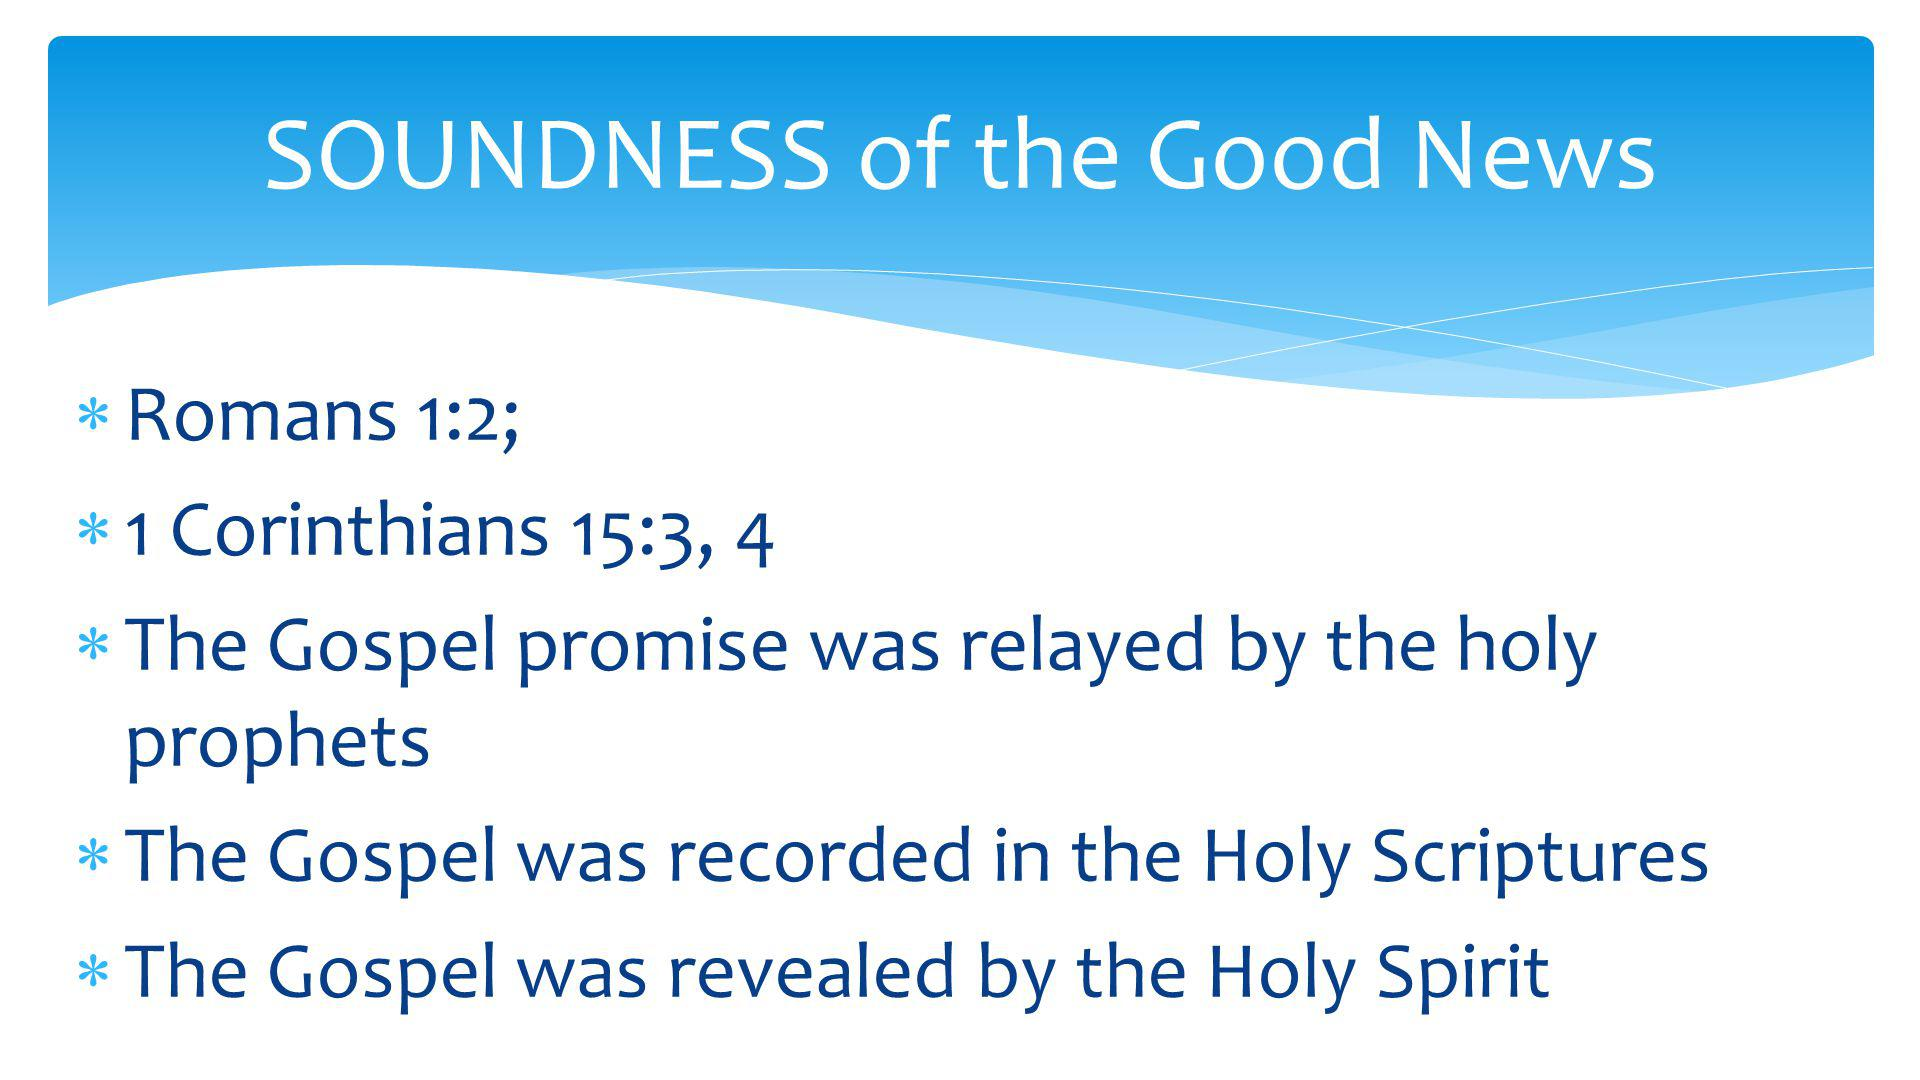  Romans 1:2;  1 Corinthians 15:3, 4  The Gospel promise was relayed by the holy prophets  The Gospel was recorded in the Holy Scriptures  The Gospel was revealed by the Holy Spirit SOUNDNESS of the Good News